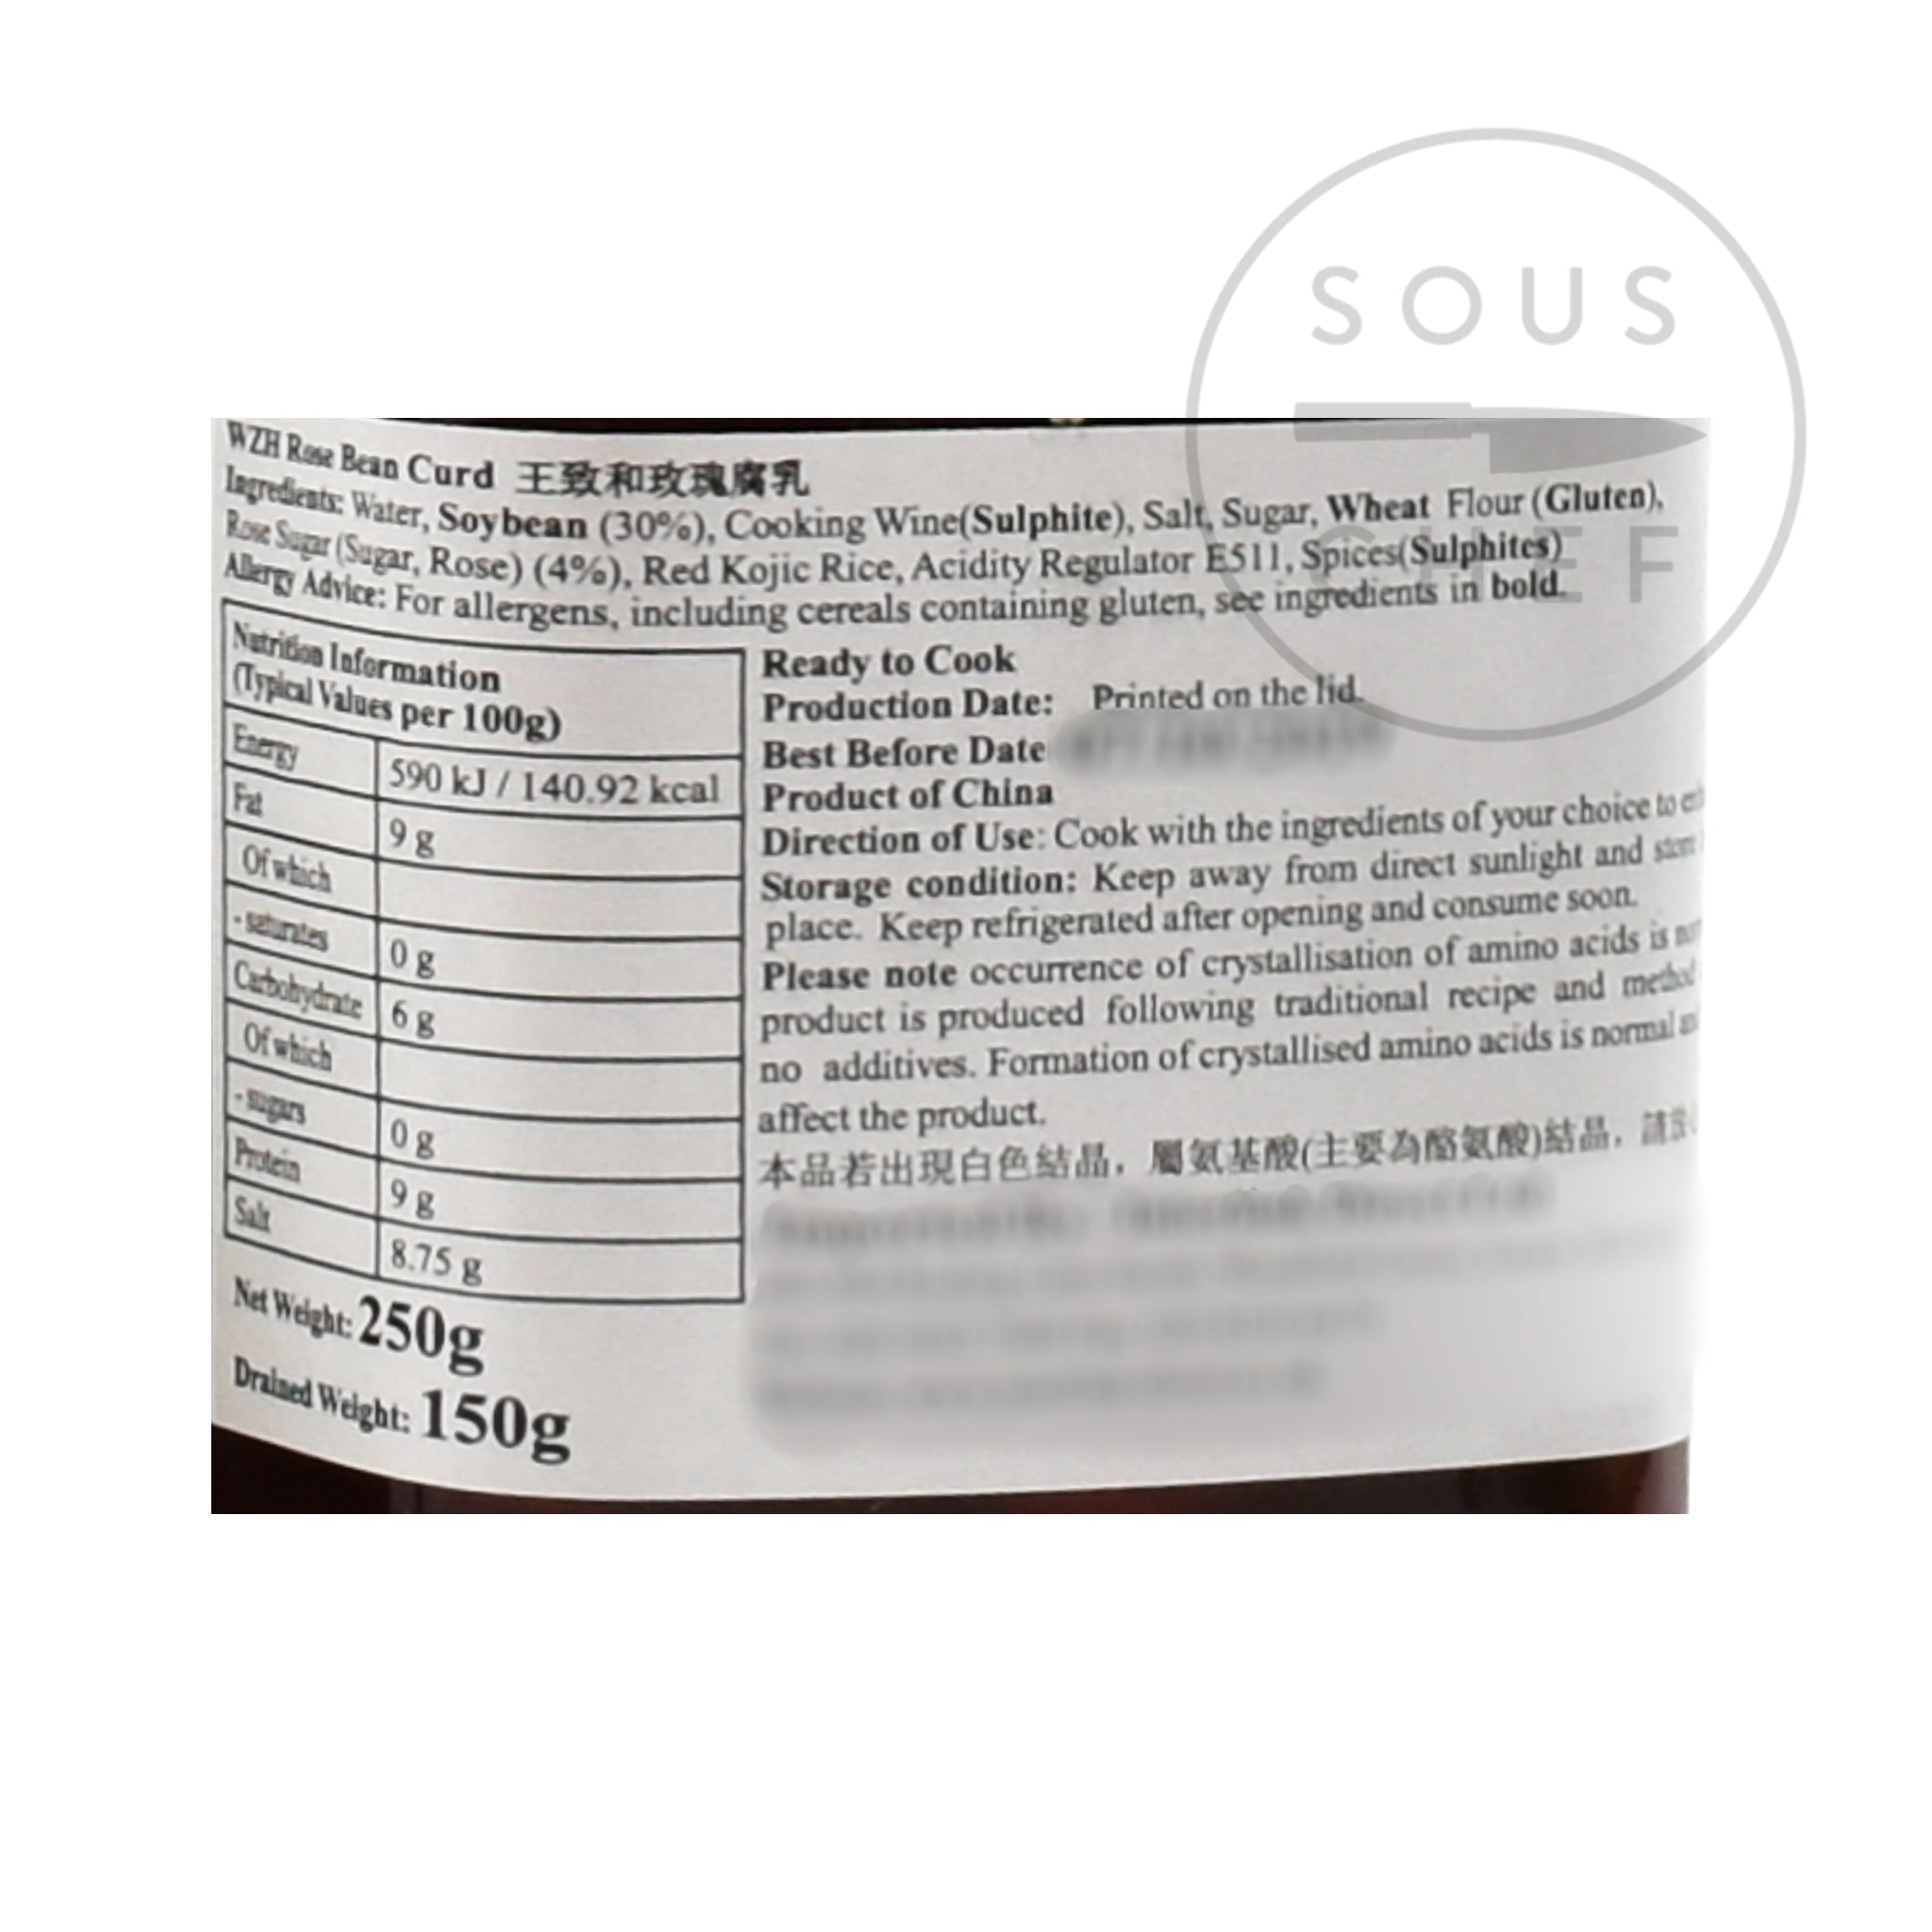 Rose Bean Curd - Preserved Red Beancurd 250g nutritional information ingredients